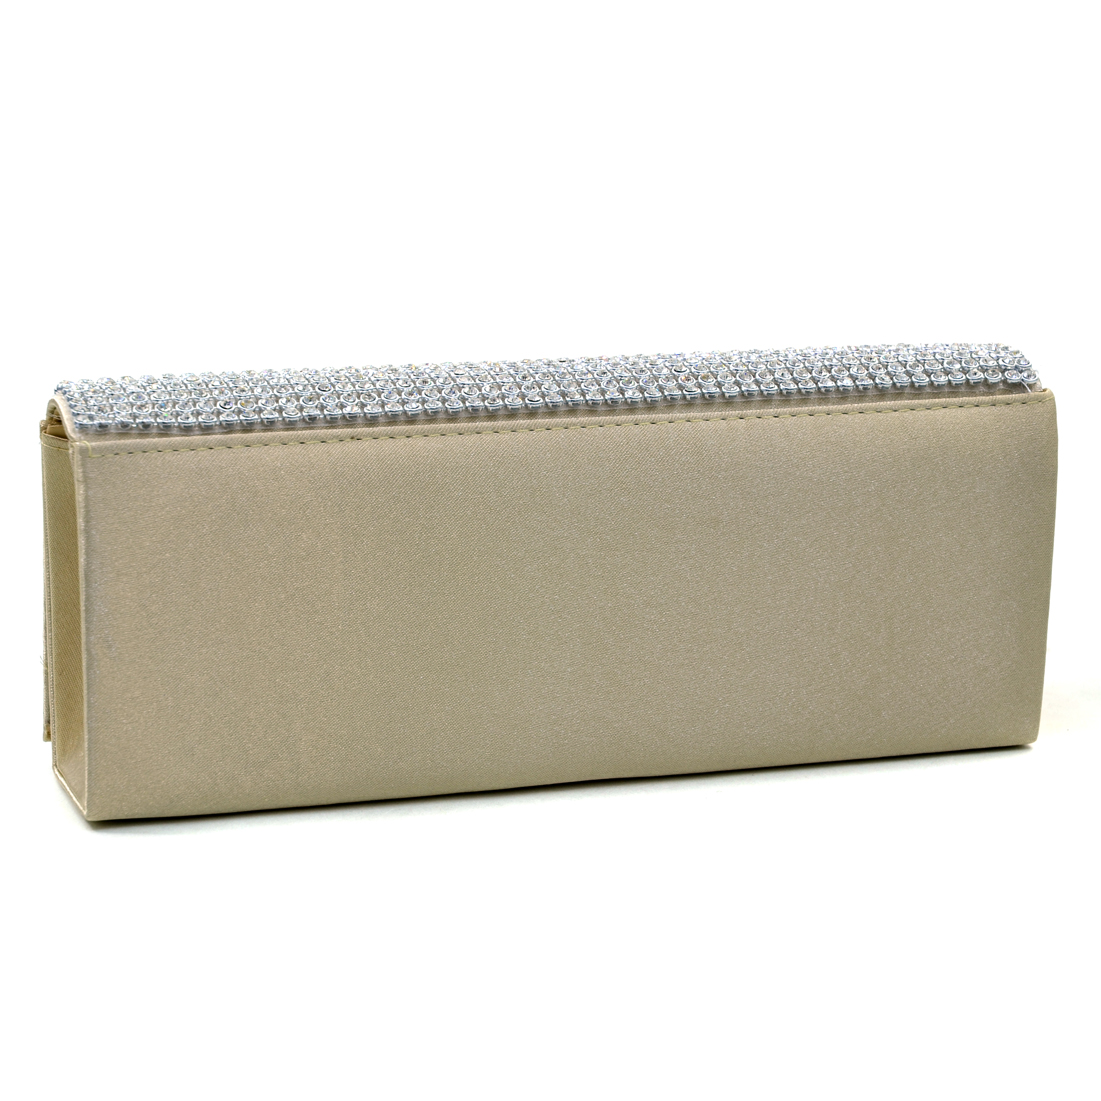 Dasein® Rhinestone Embellished Evening Clutch